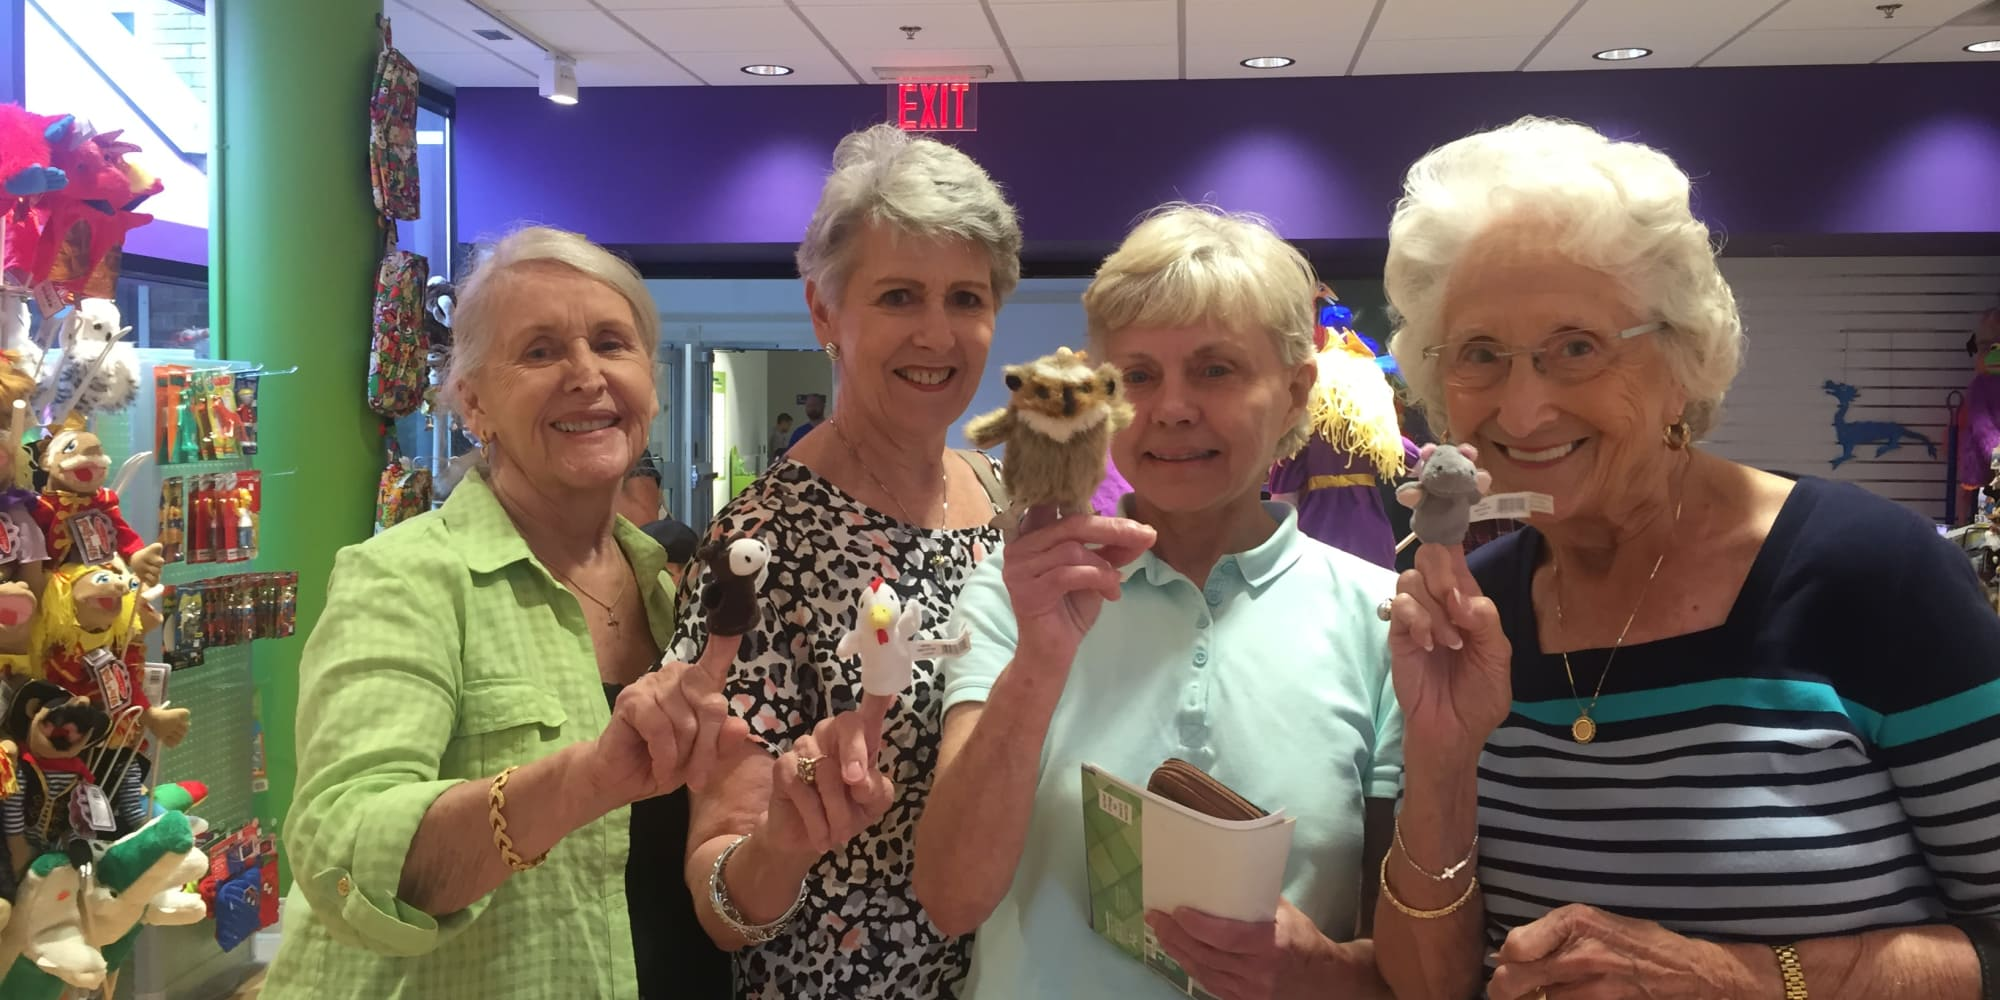 Residents from The Palms at LaQuinta Gracious Retirement Living in La Quinta, California with finger puppets in a store